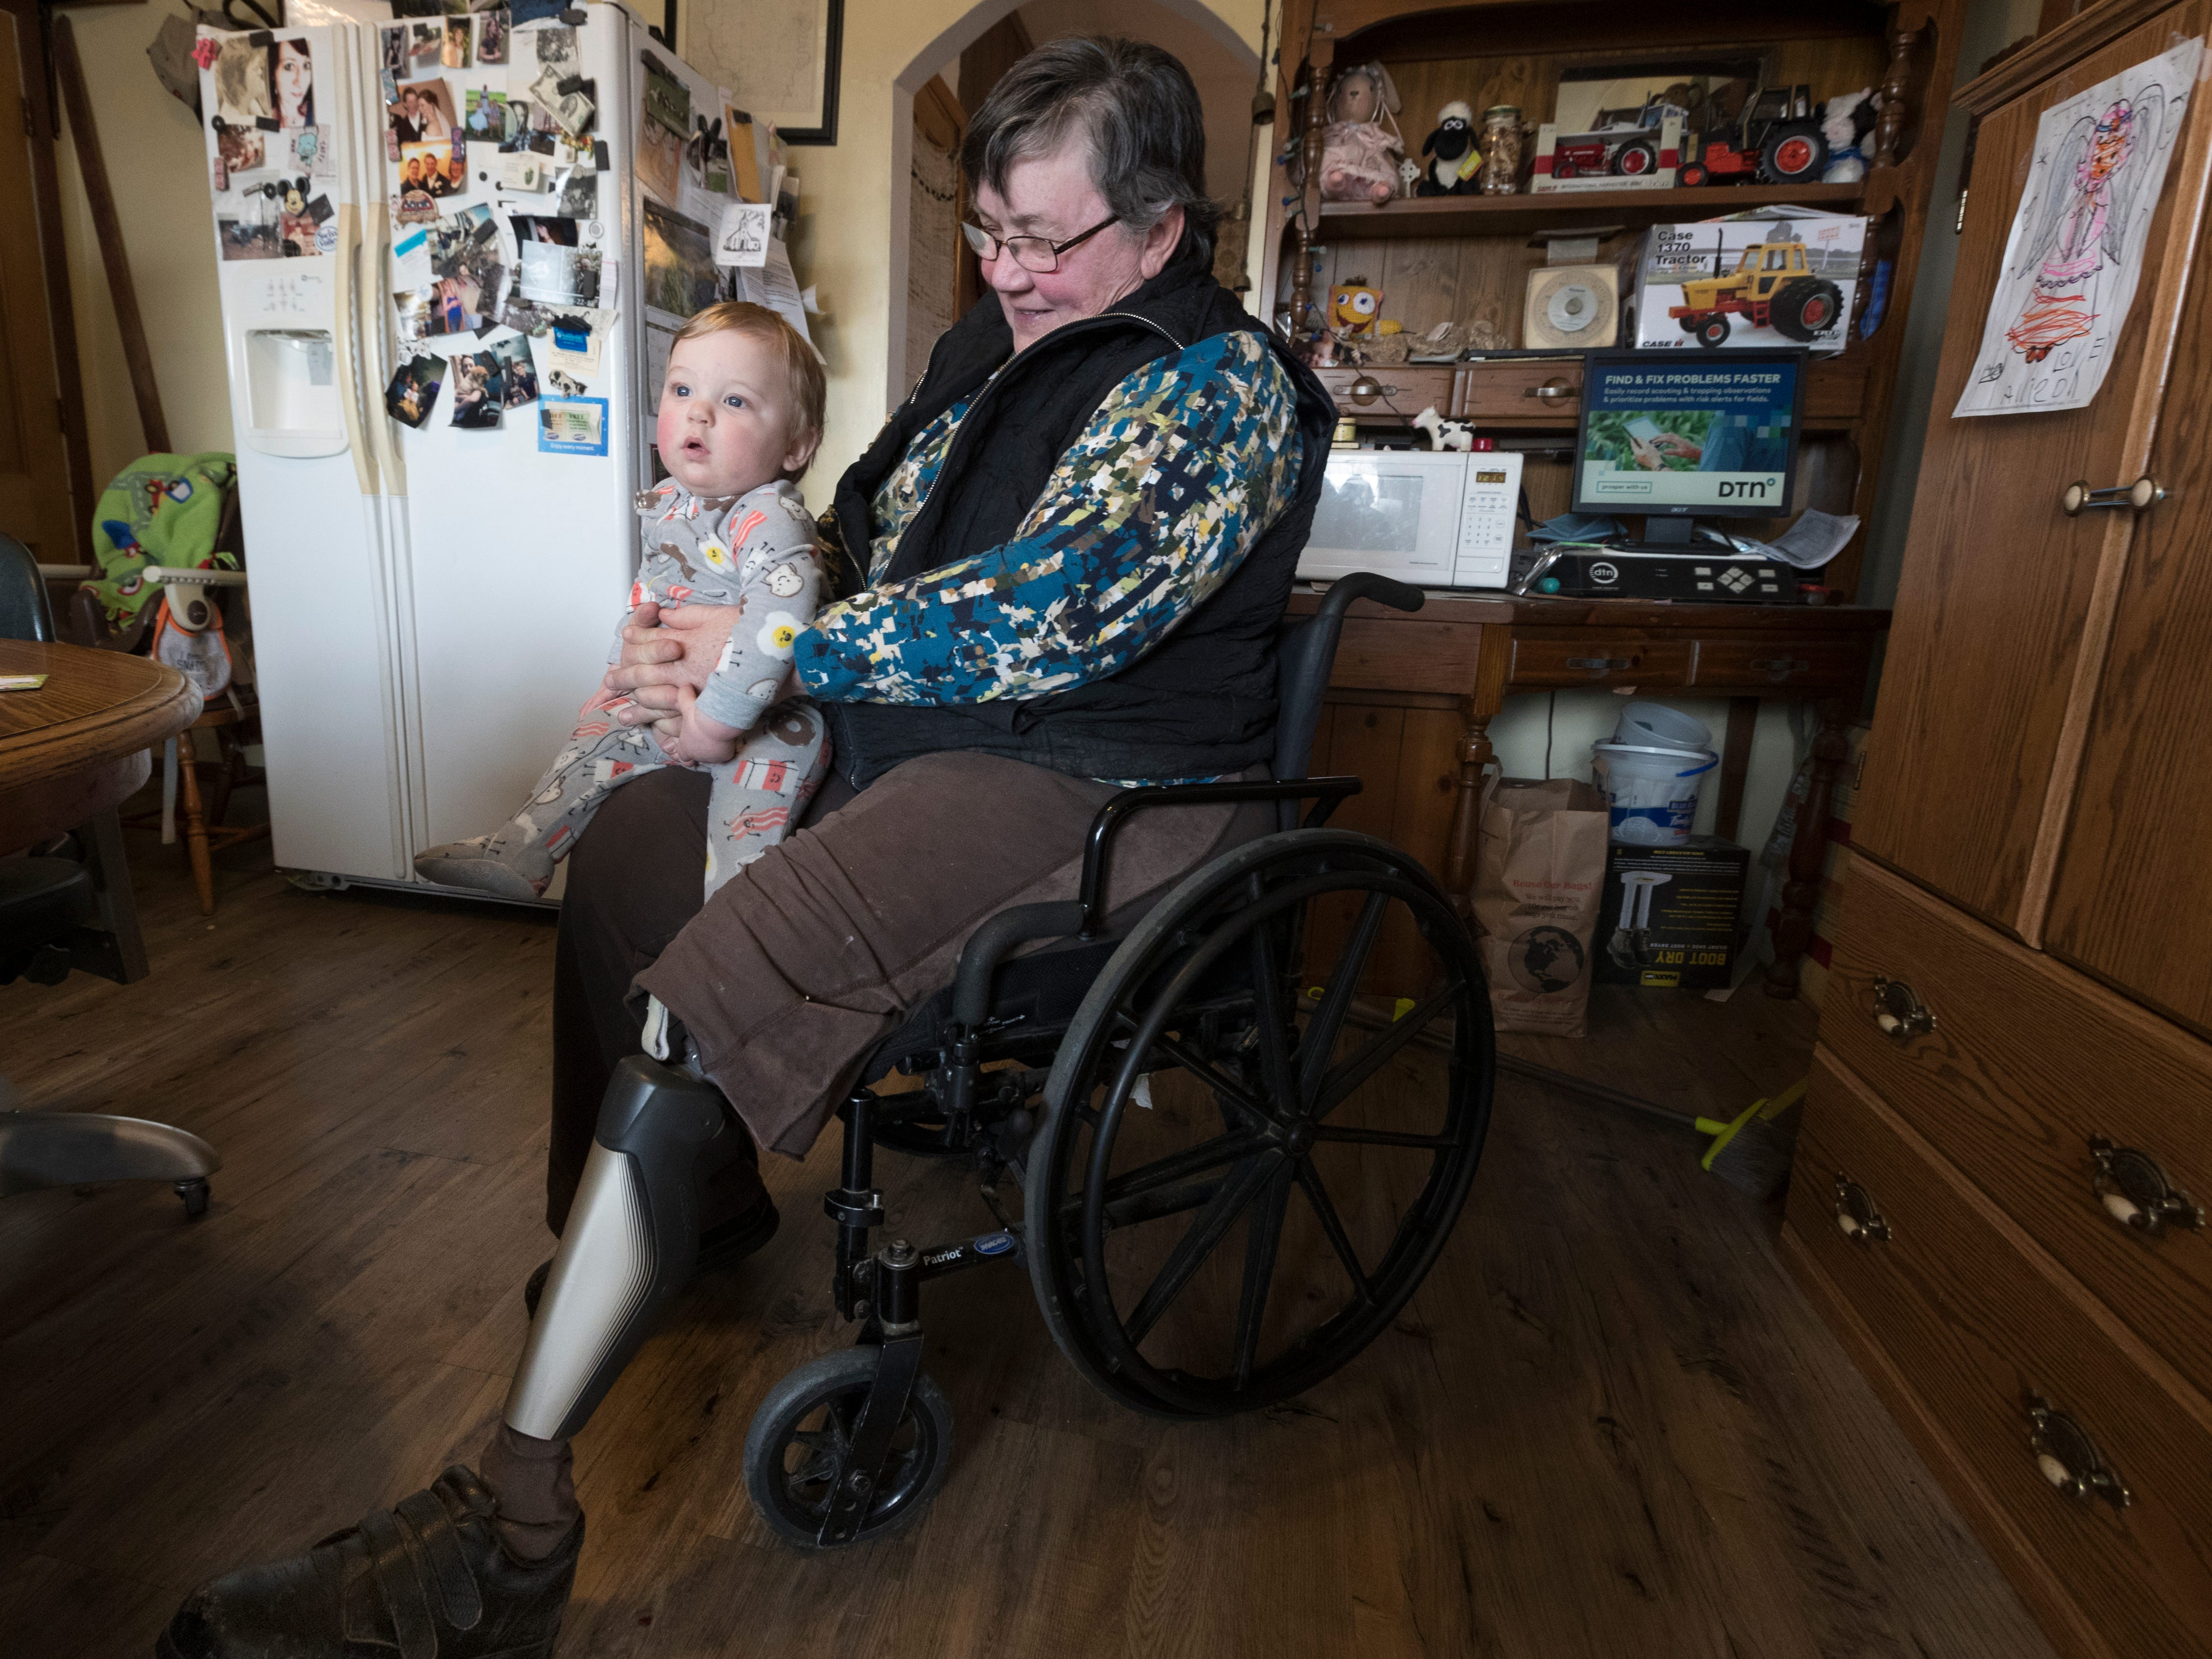 Cathy Mess holds her 10-month-old grandson, Ben. Mess used to help with many of the chores on the farm before she lost her left leg in a farm accident.